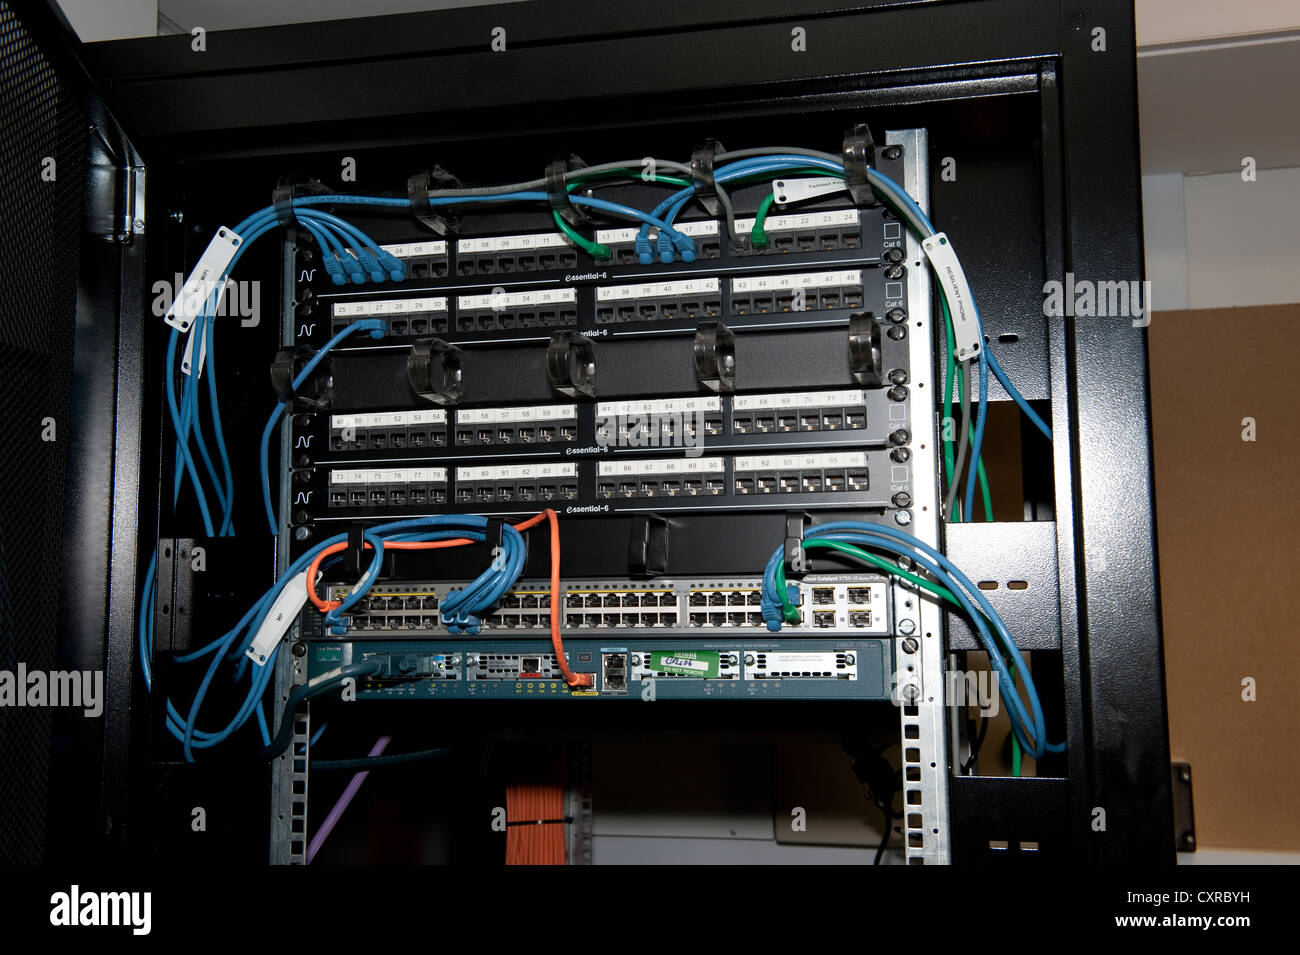 Cat5 5e Computer Patch Panel Rack Cables Stock Photo